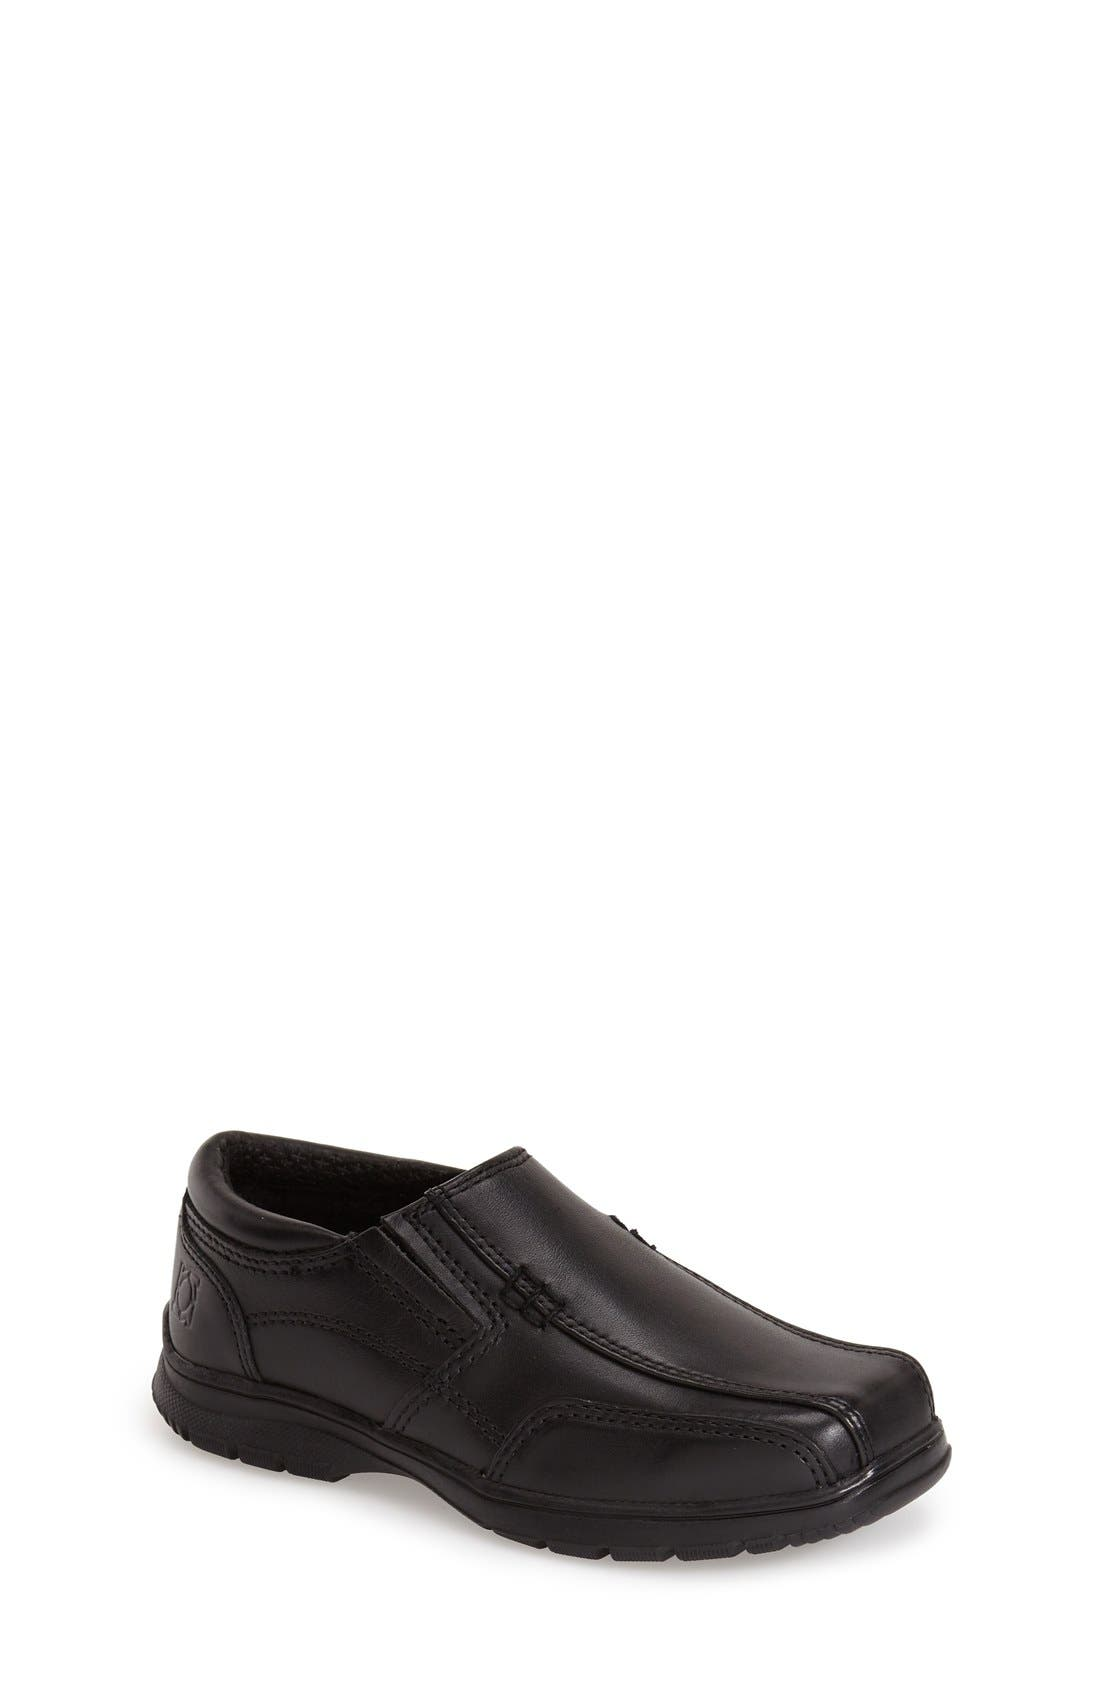 KENNETH COLE NEW YORK Reaction Kenneth Cole 'Check N